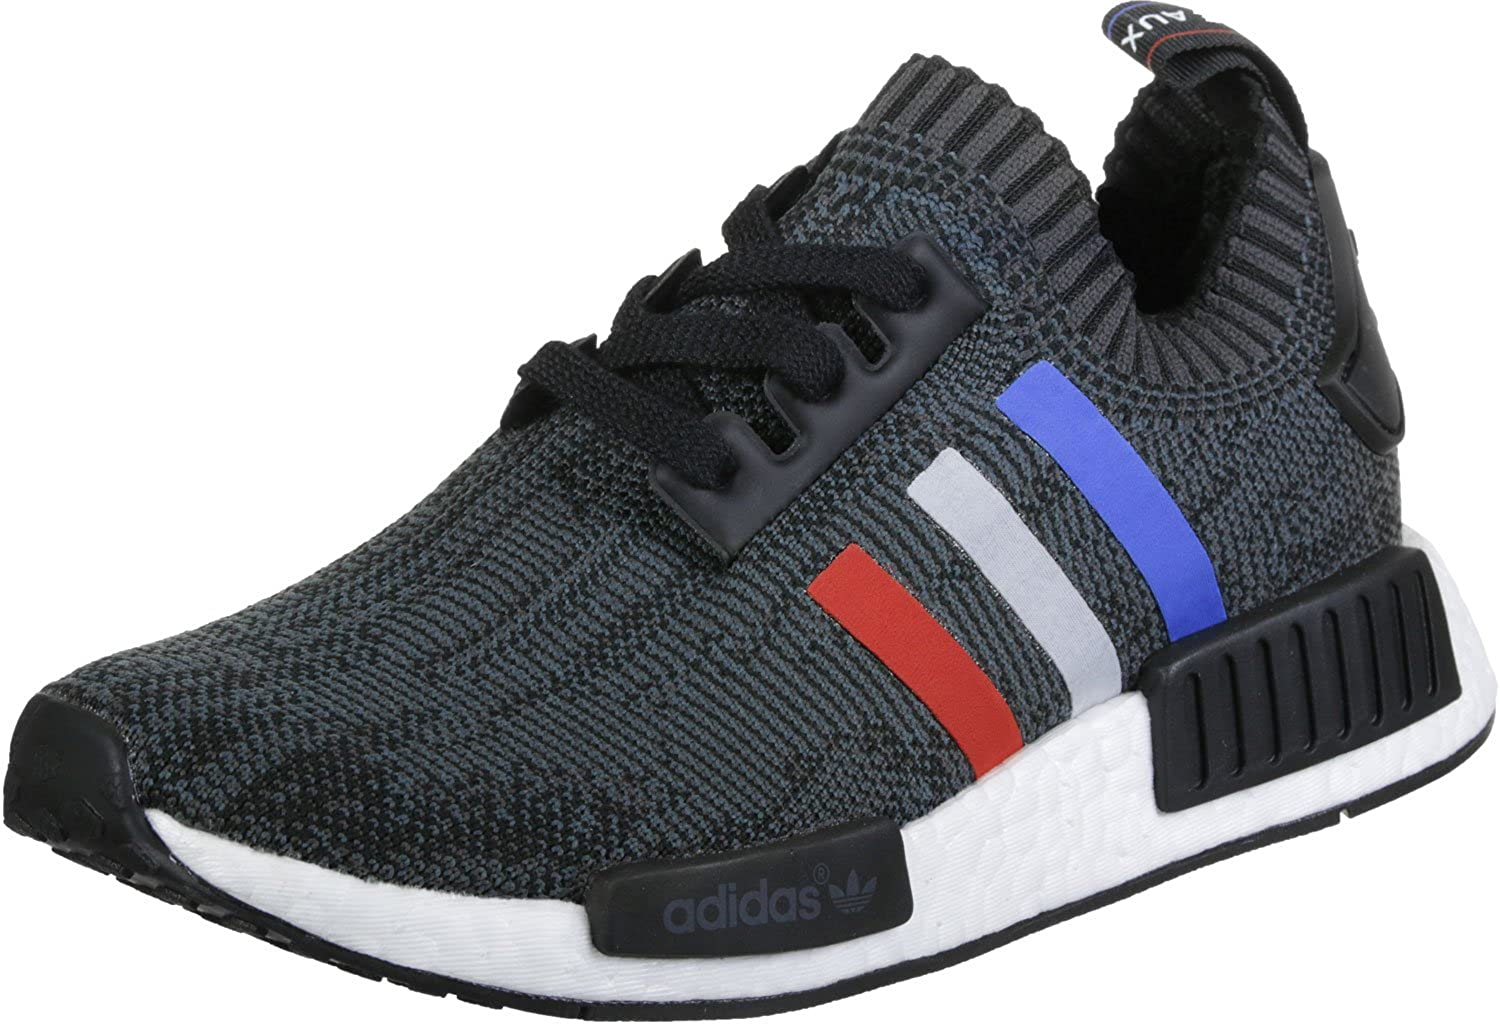 new style 6efbb 46a7a Adidas NMD_R1 PK - BB2887